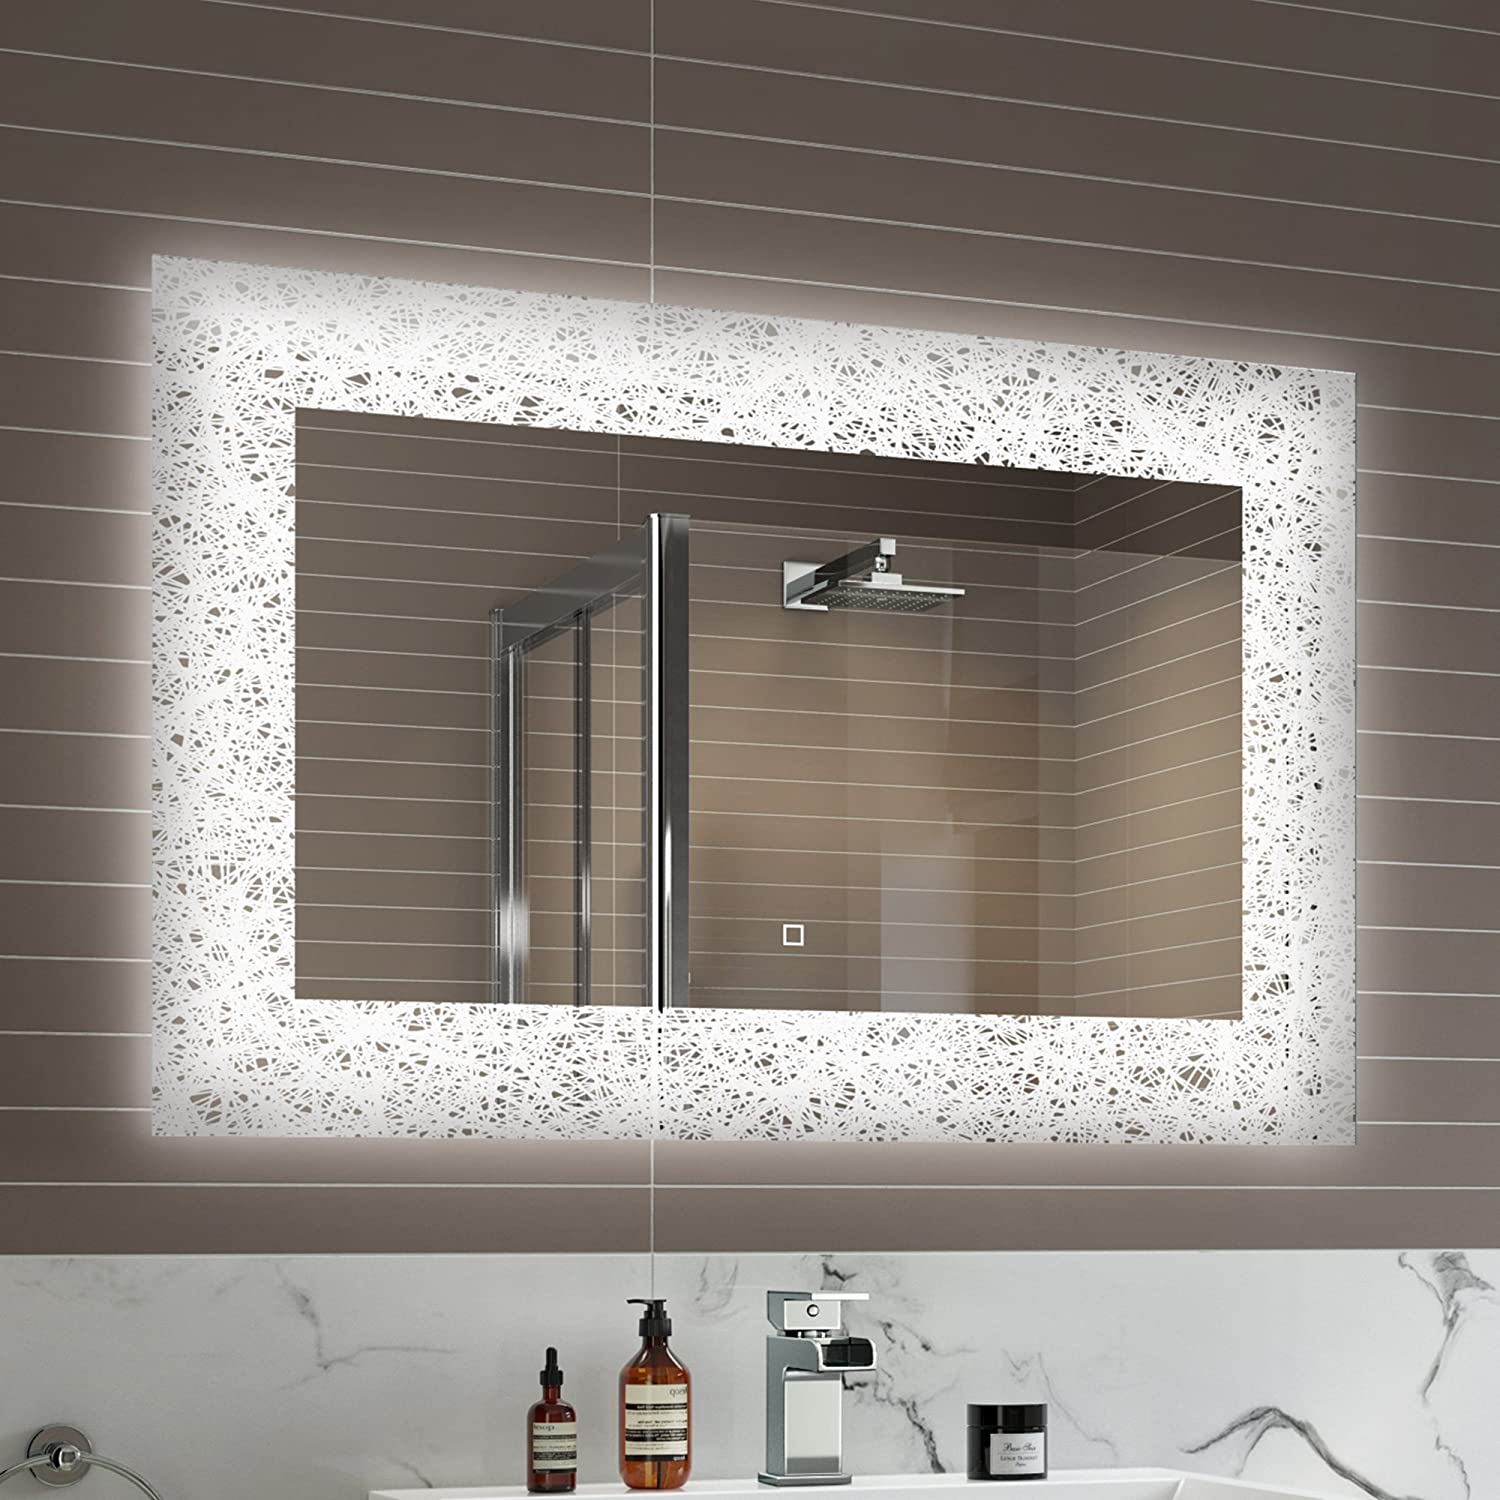 900 X 600 Mm Designer Illuminated LED Bathroom Mirror Light Sensor Demister ML7001